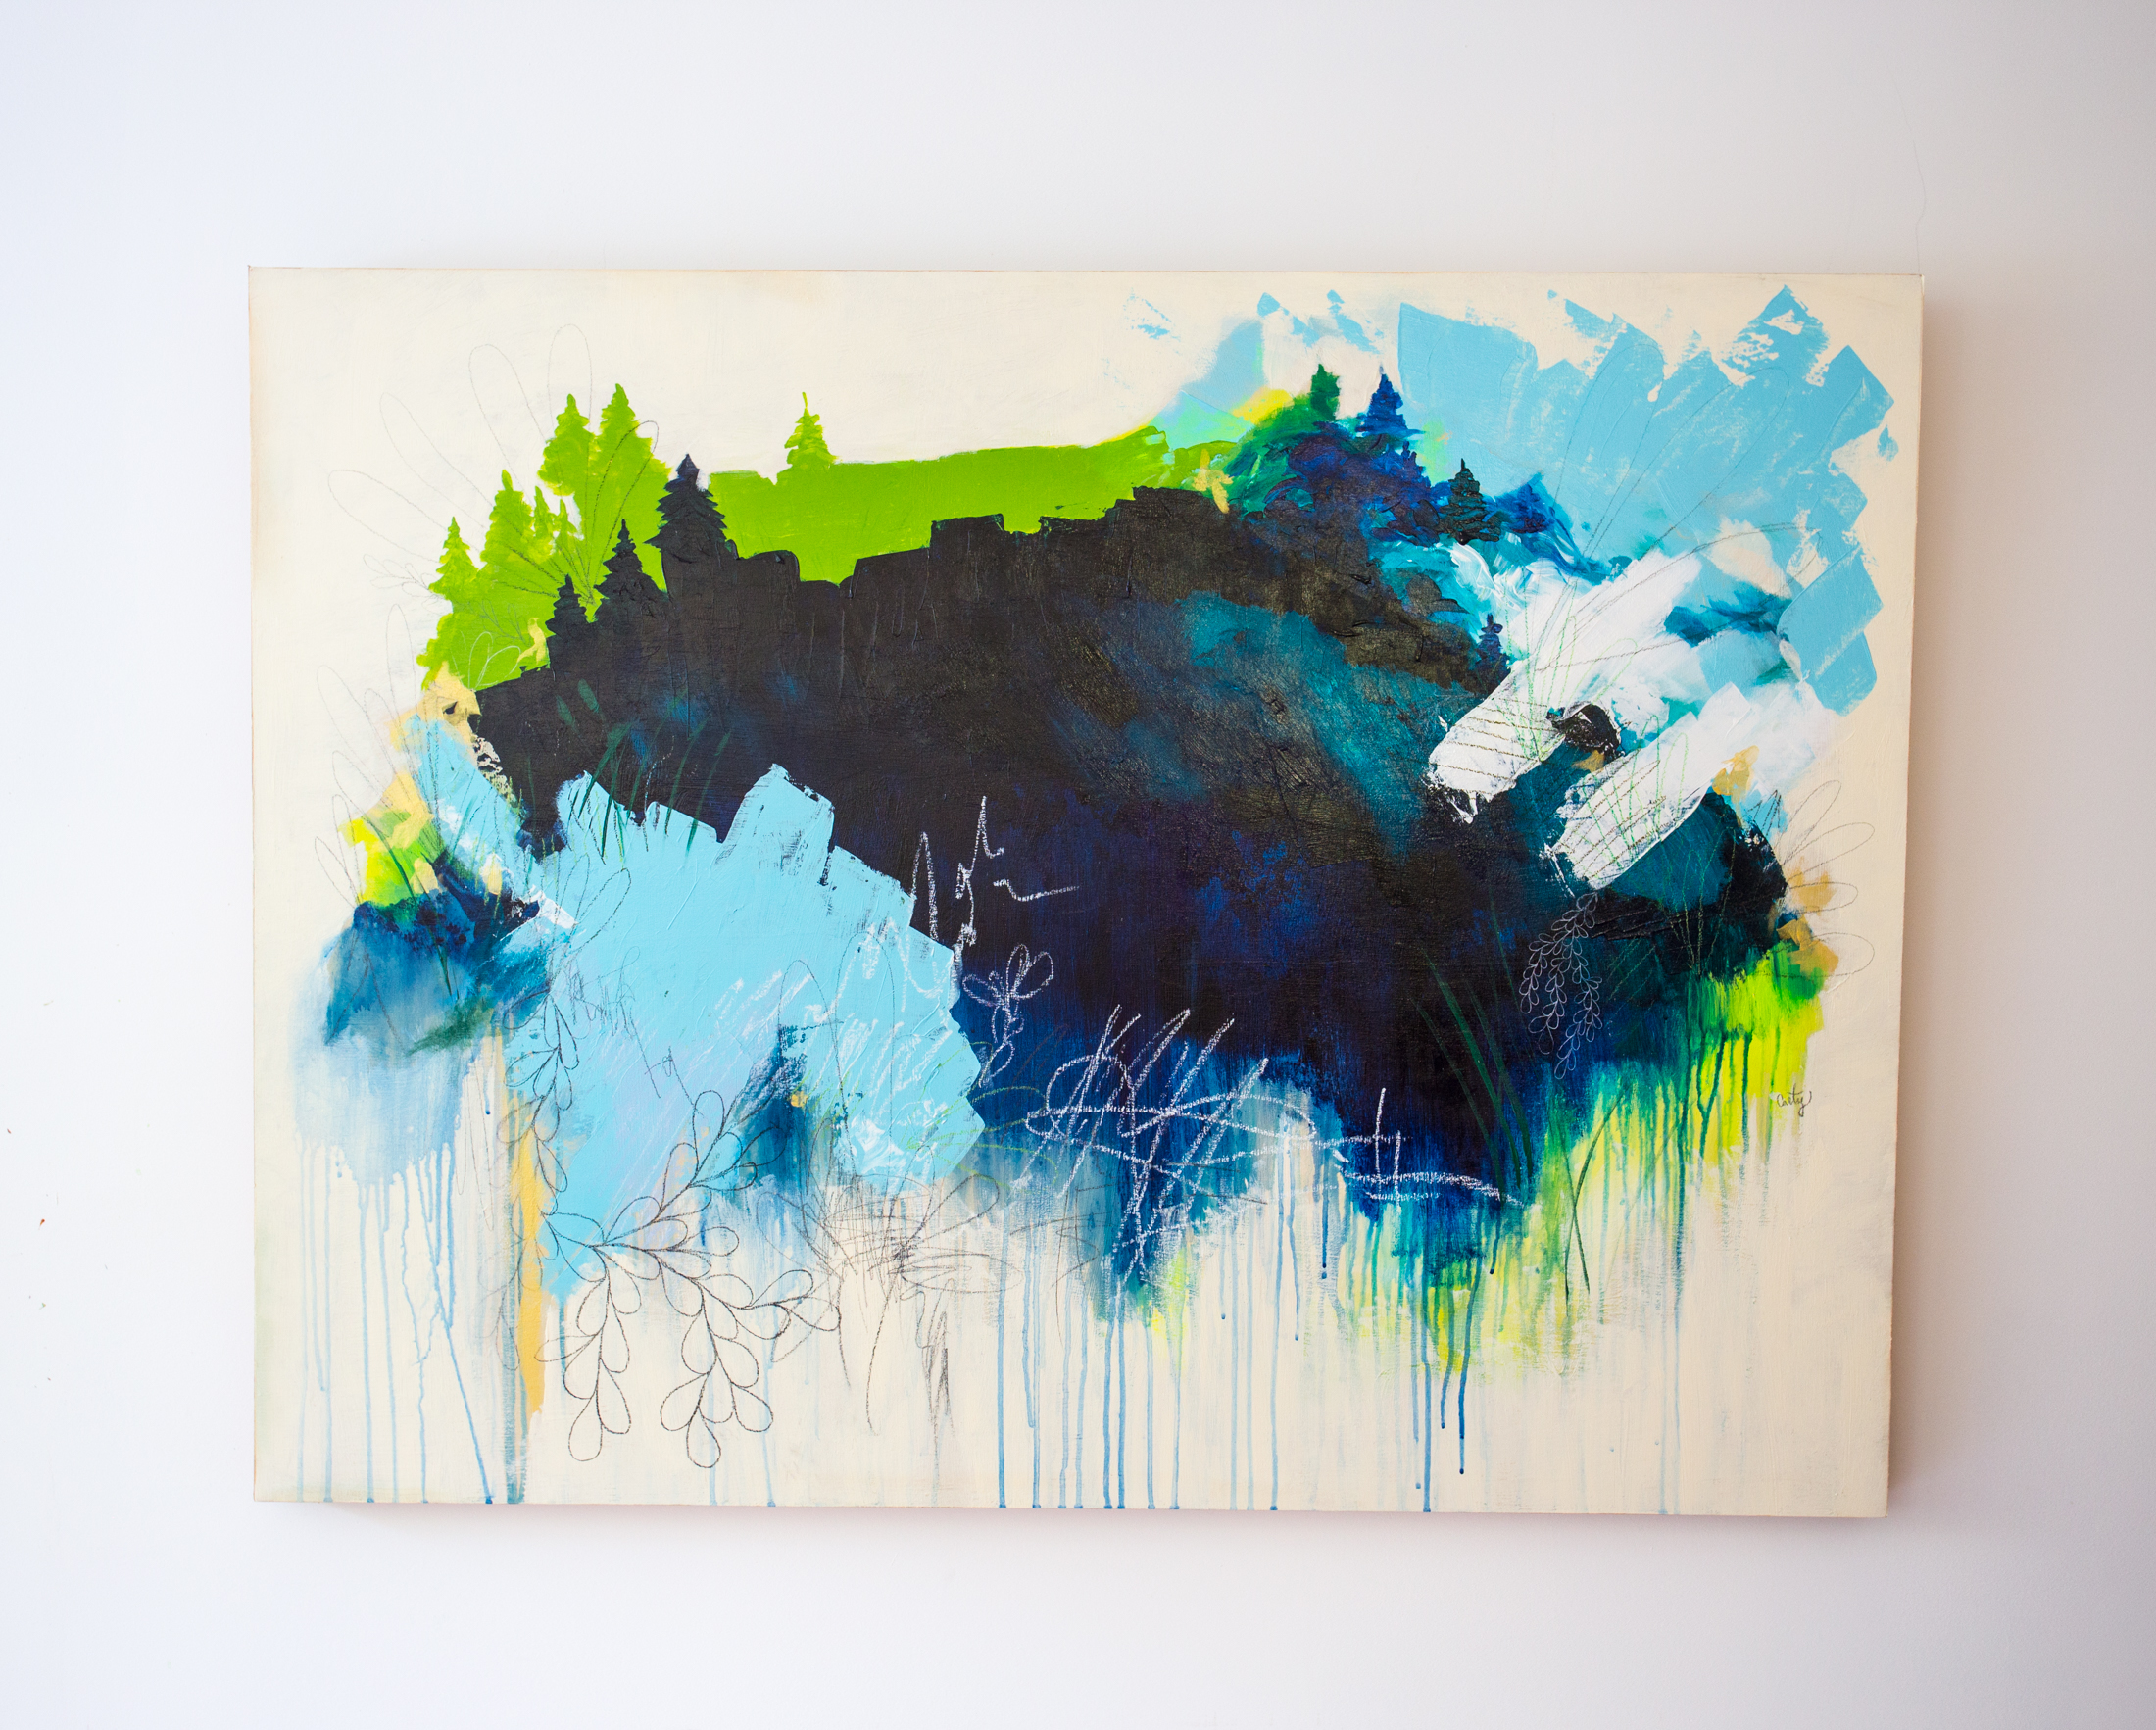 abstract_landscape_painting_megan_carty